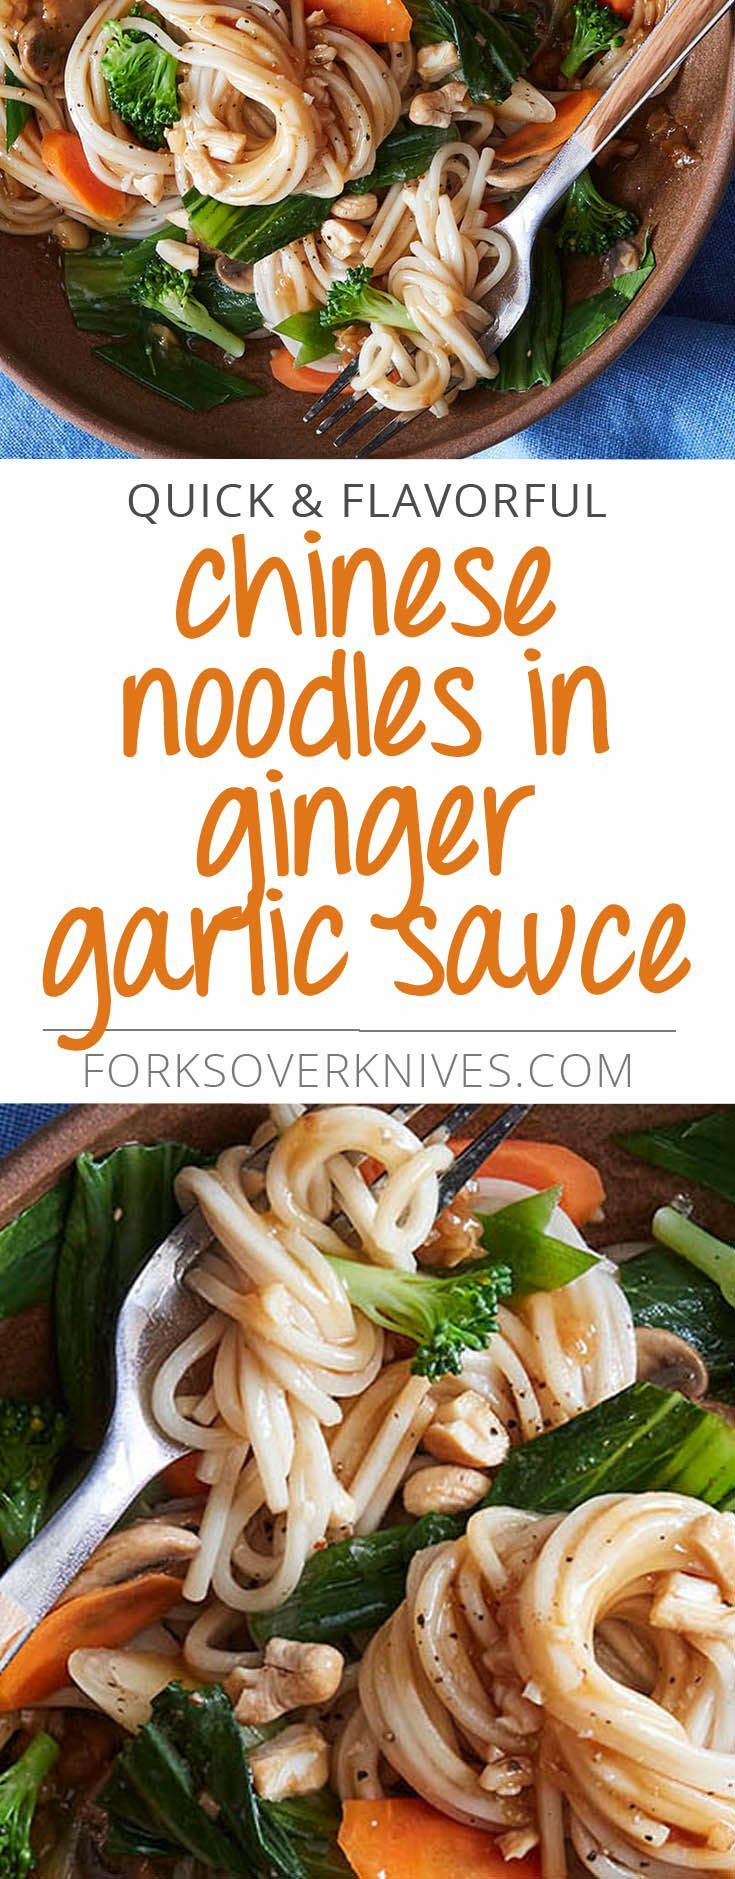 This quick and flavorful dish can be made quicker still by using frozen veggies in place of the fresh. Chow mein or lo mein Asian noodles are good here, but it's great with any other noodles, even spaghetti. From Forks...  Read more